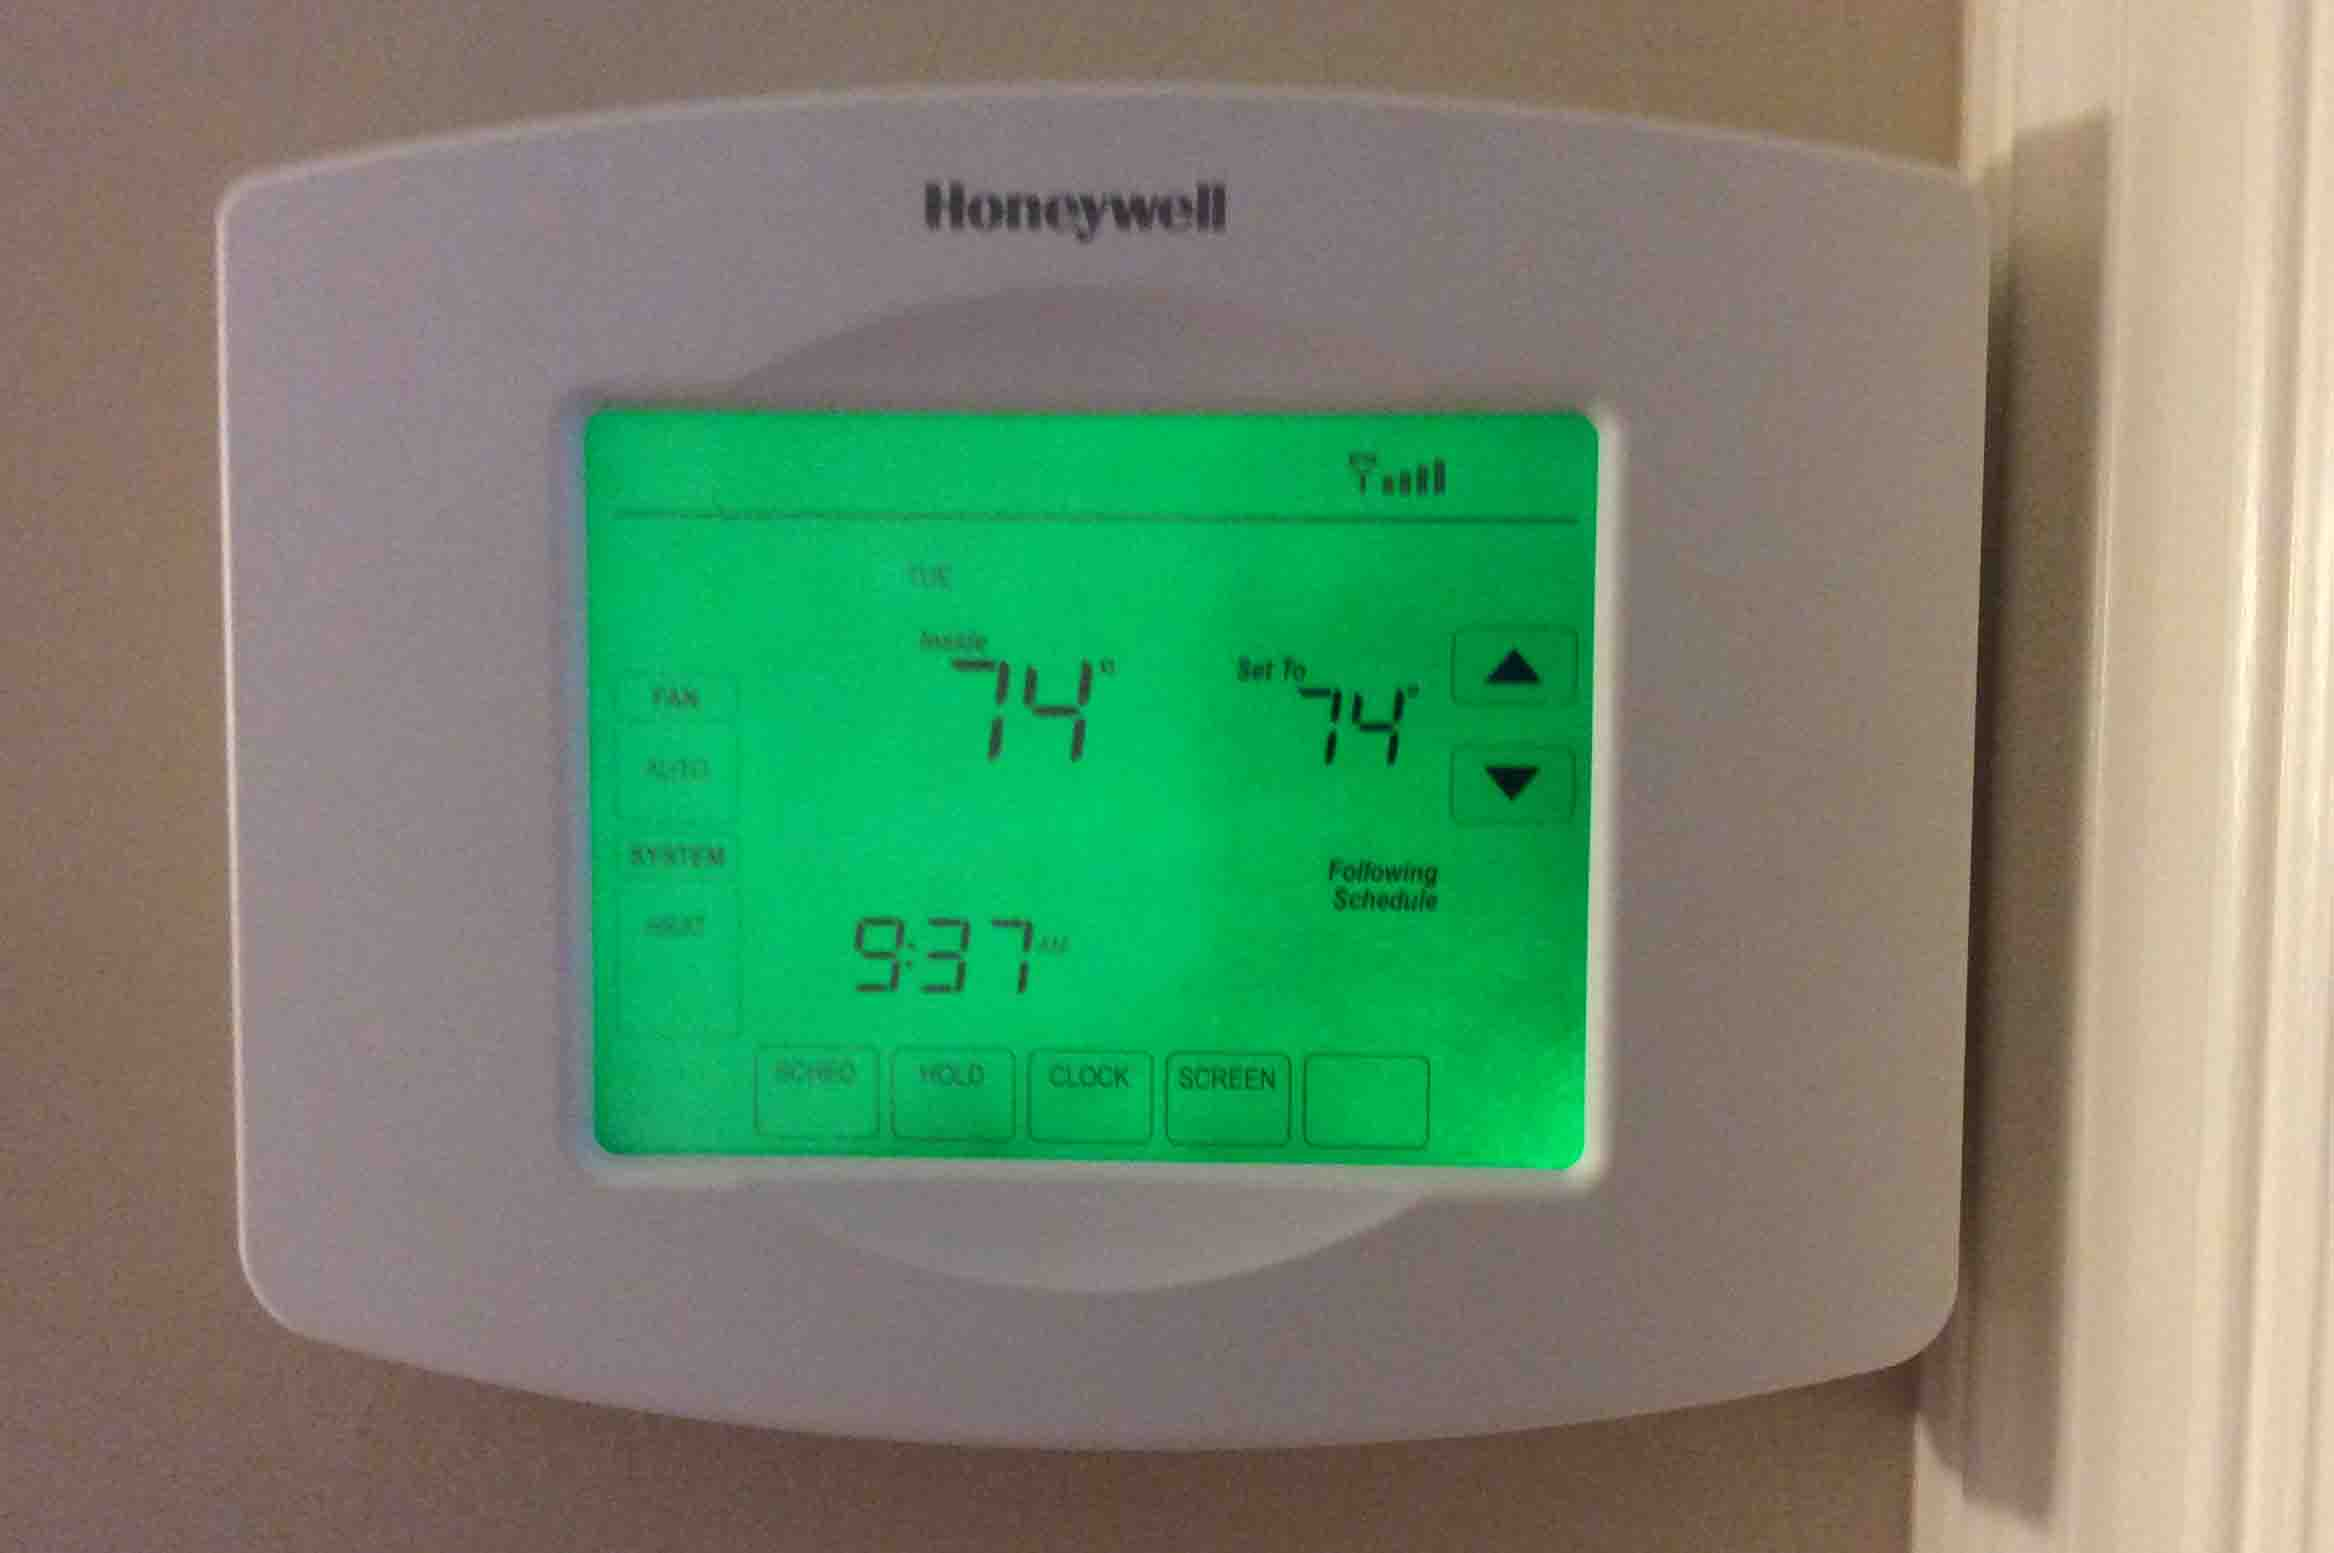 how to reset honeywell thermostat rth8580wf to factory default rh tomstek us Honeywell RTH8500D Manual PDF Honeywell Thermostat Program Guide